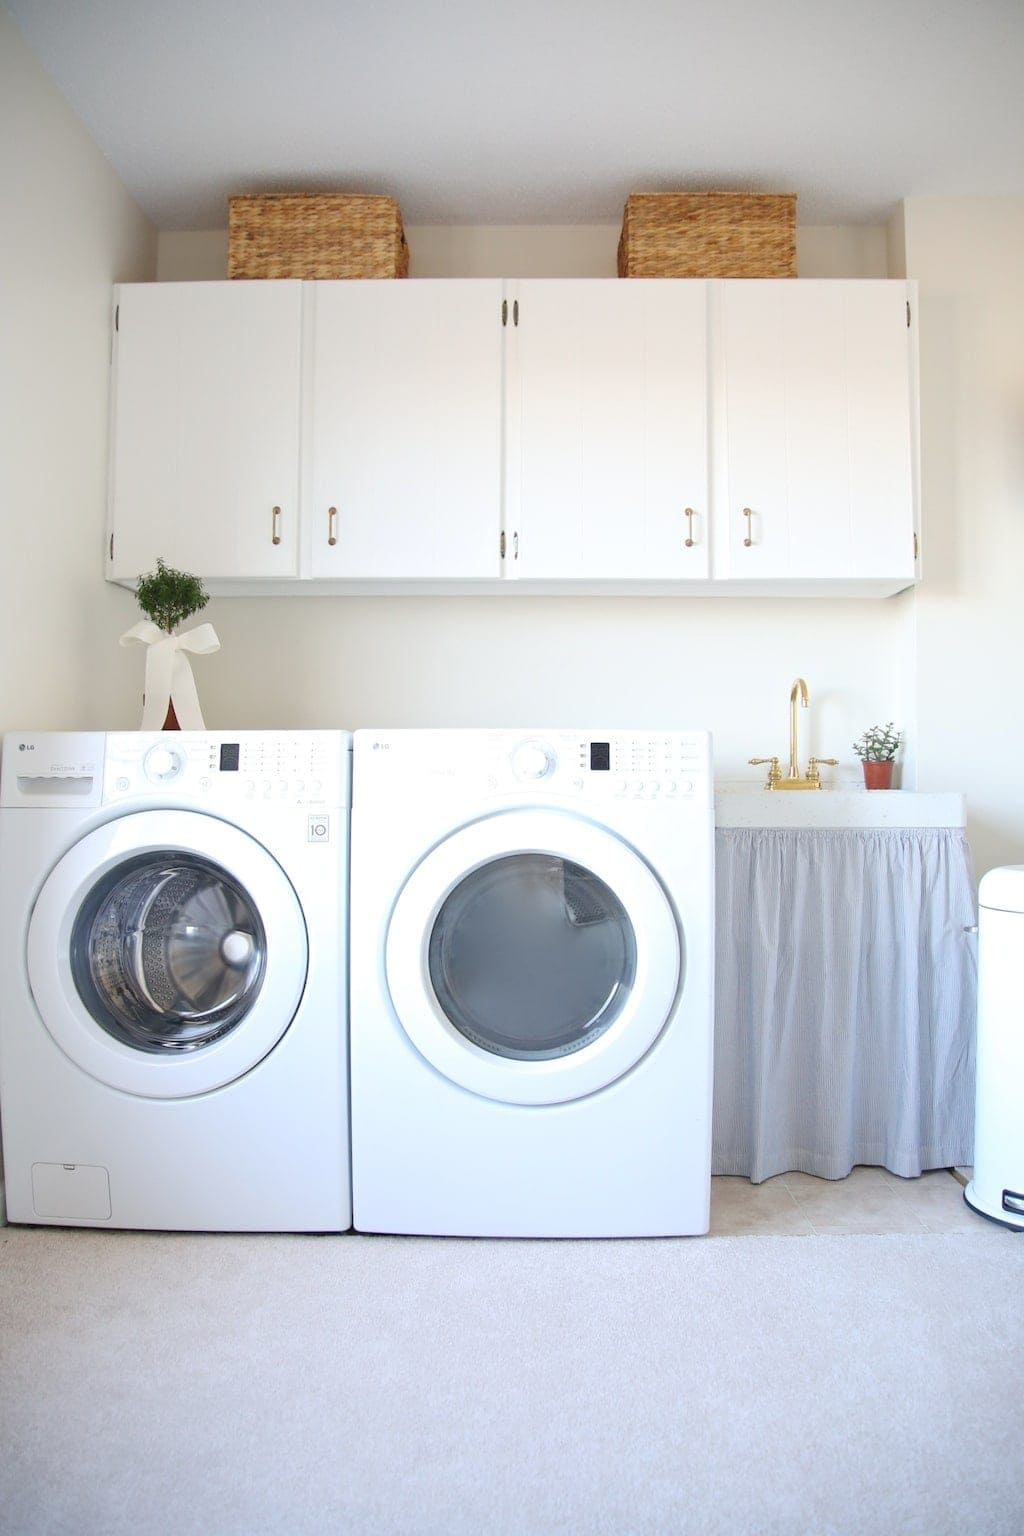 Add function & storage to your laundry room with these laundry room decor ideas!